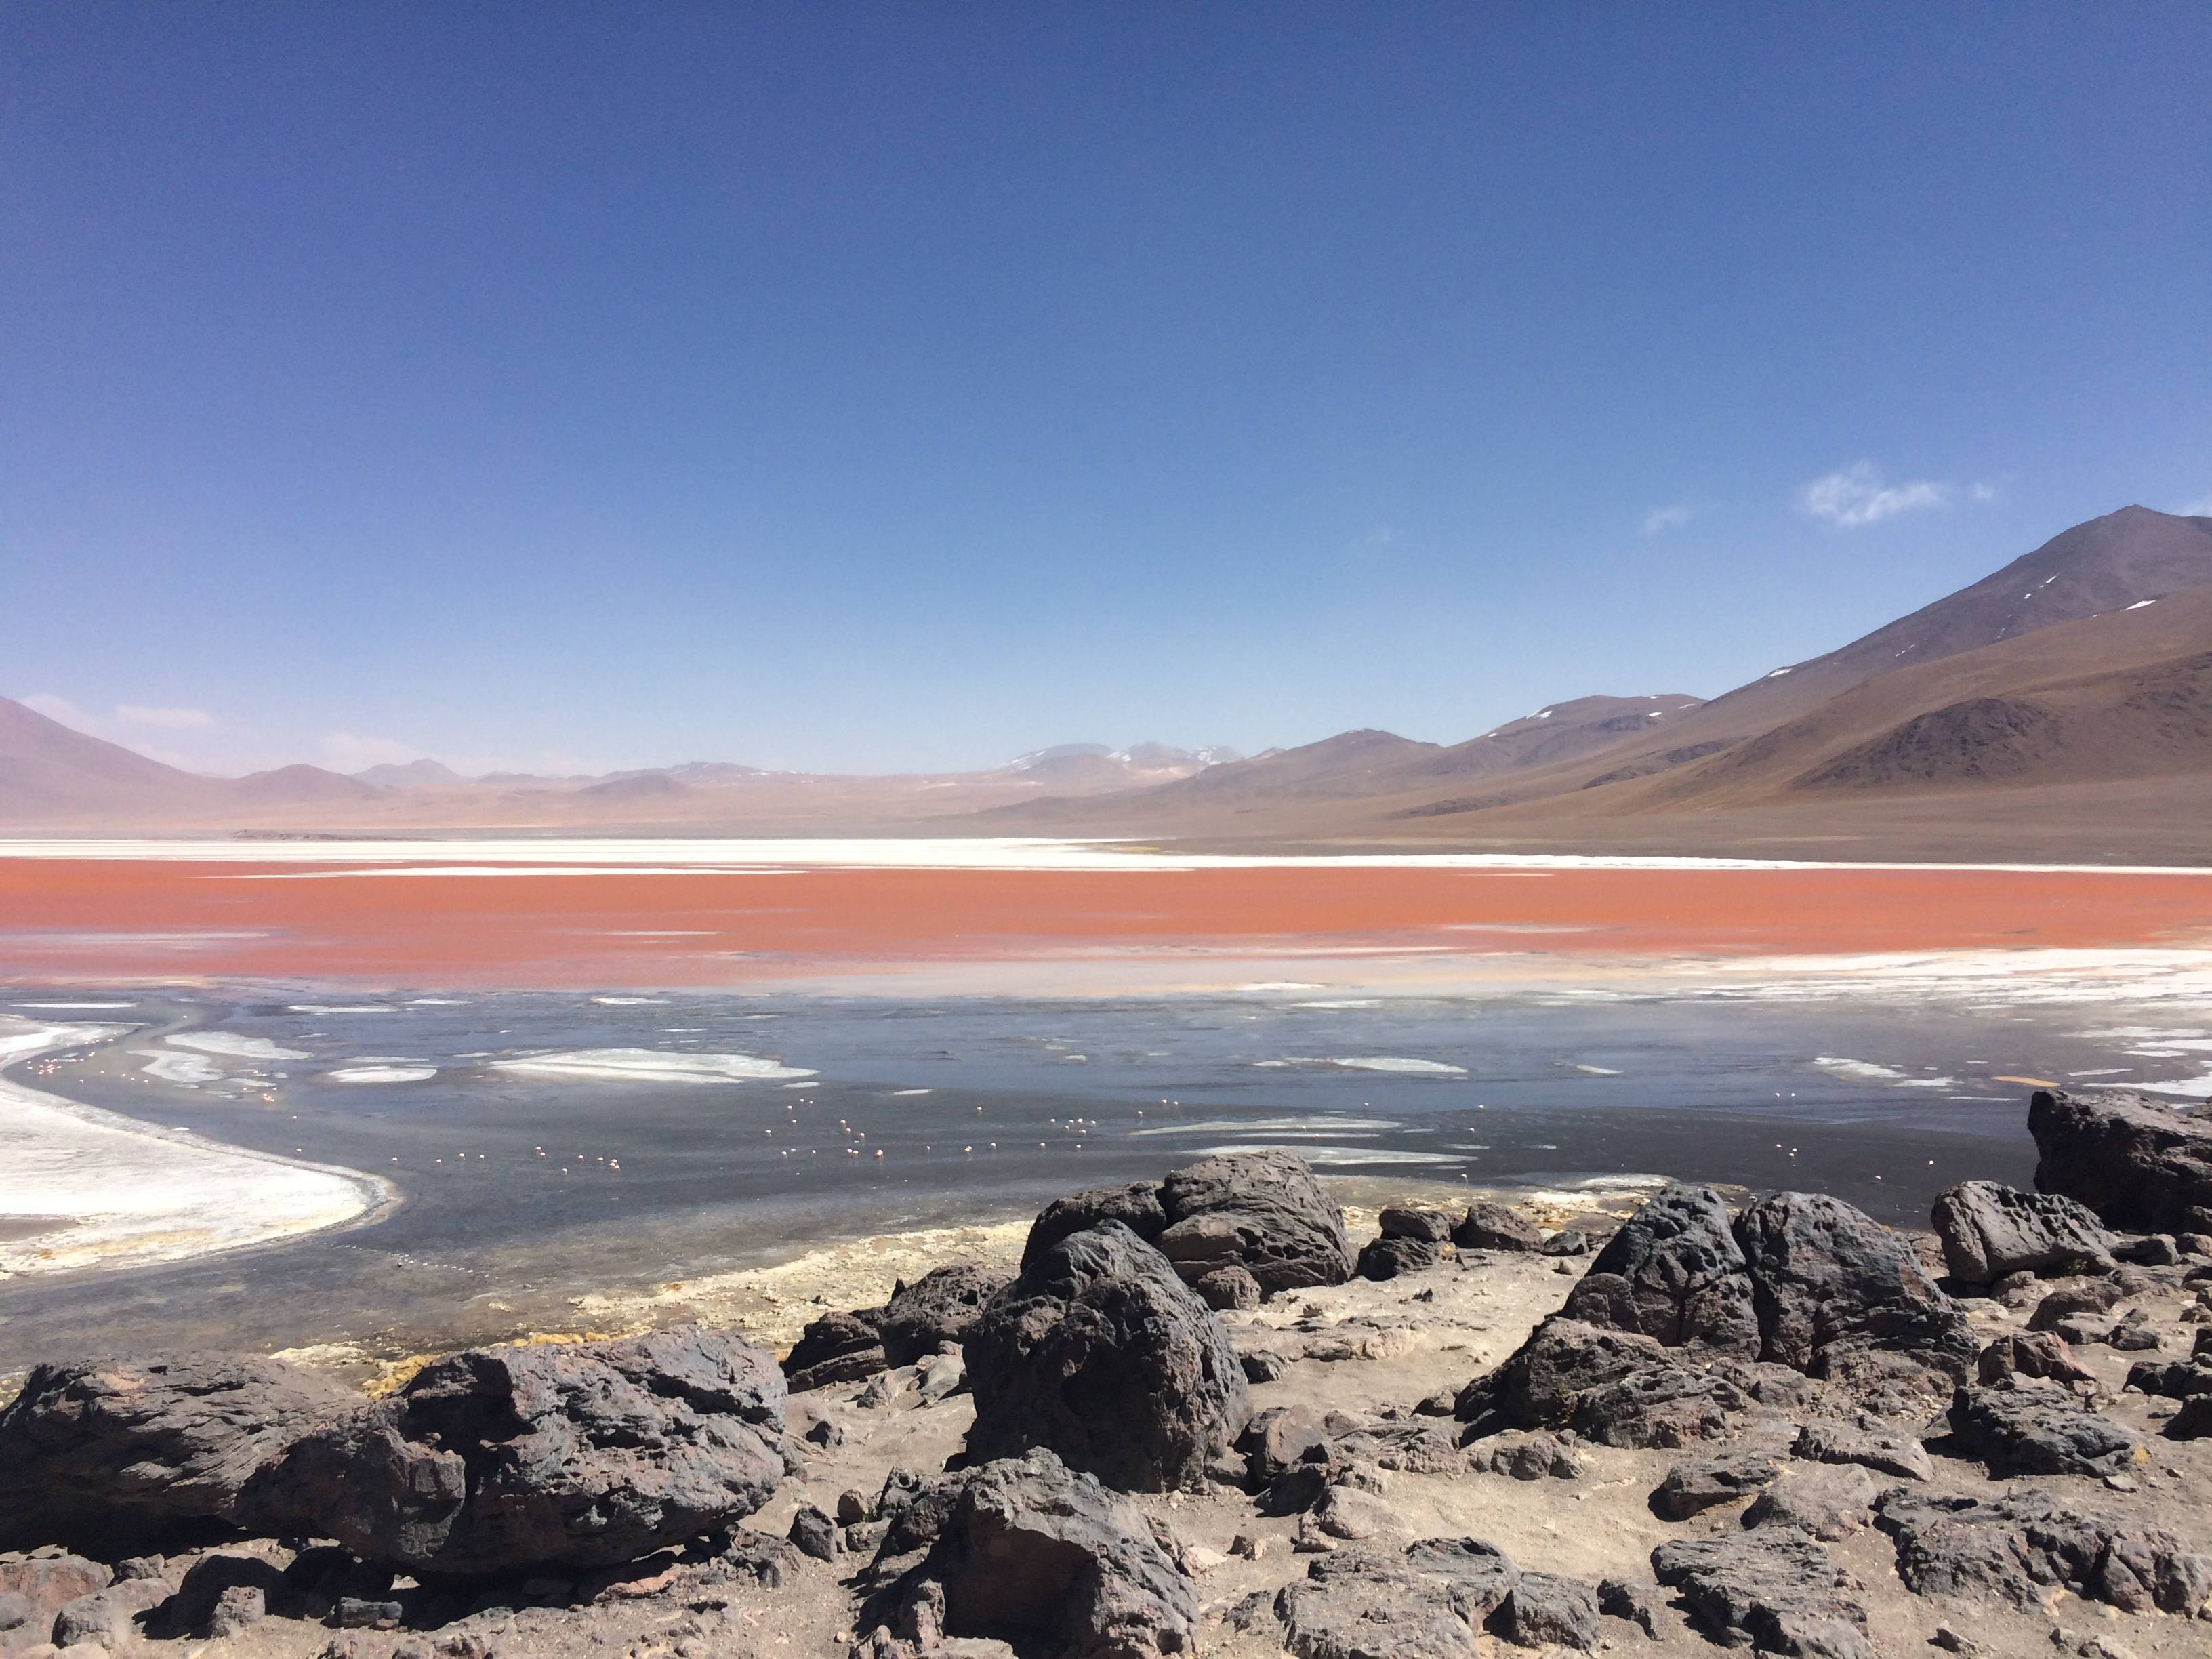 Photo 3: Salar d'Uyuni et Sud-Lipez